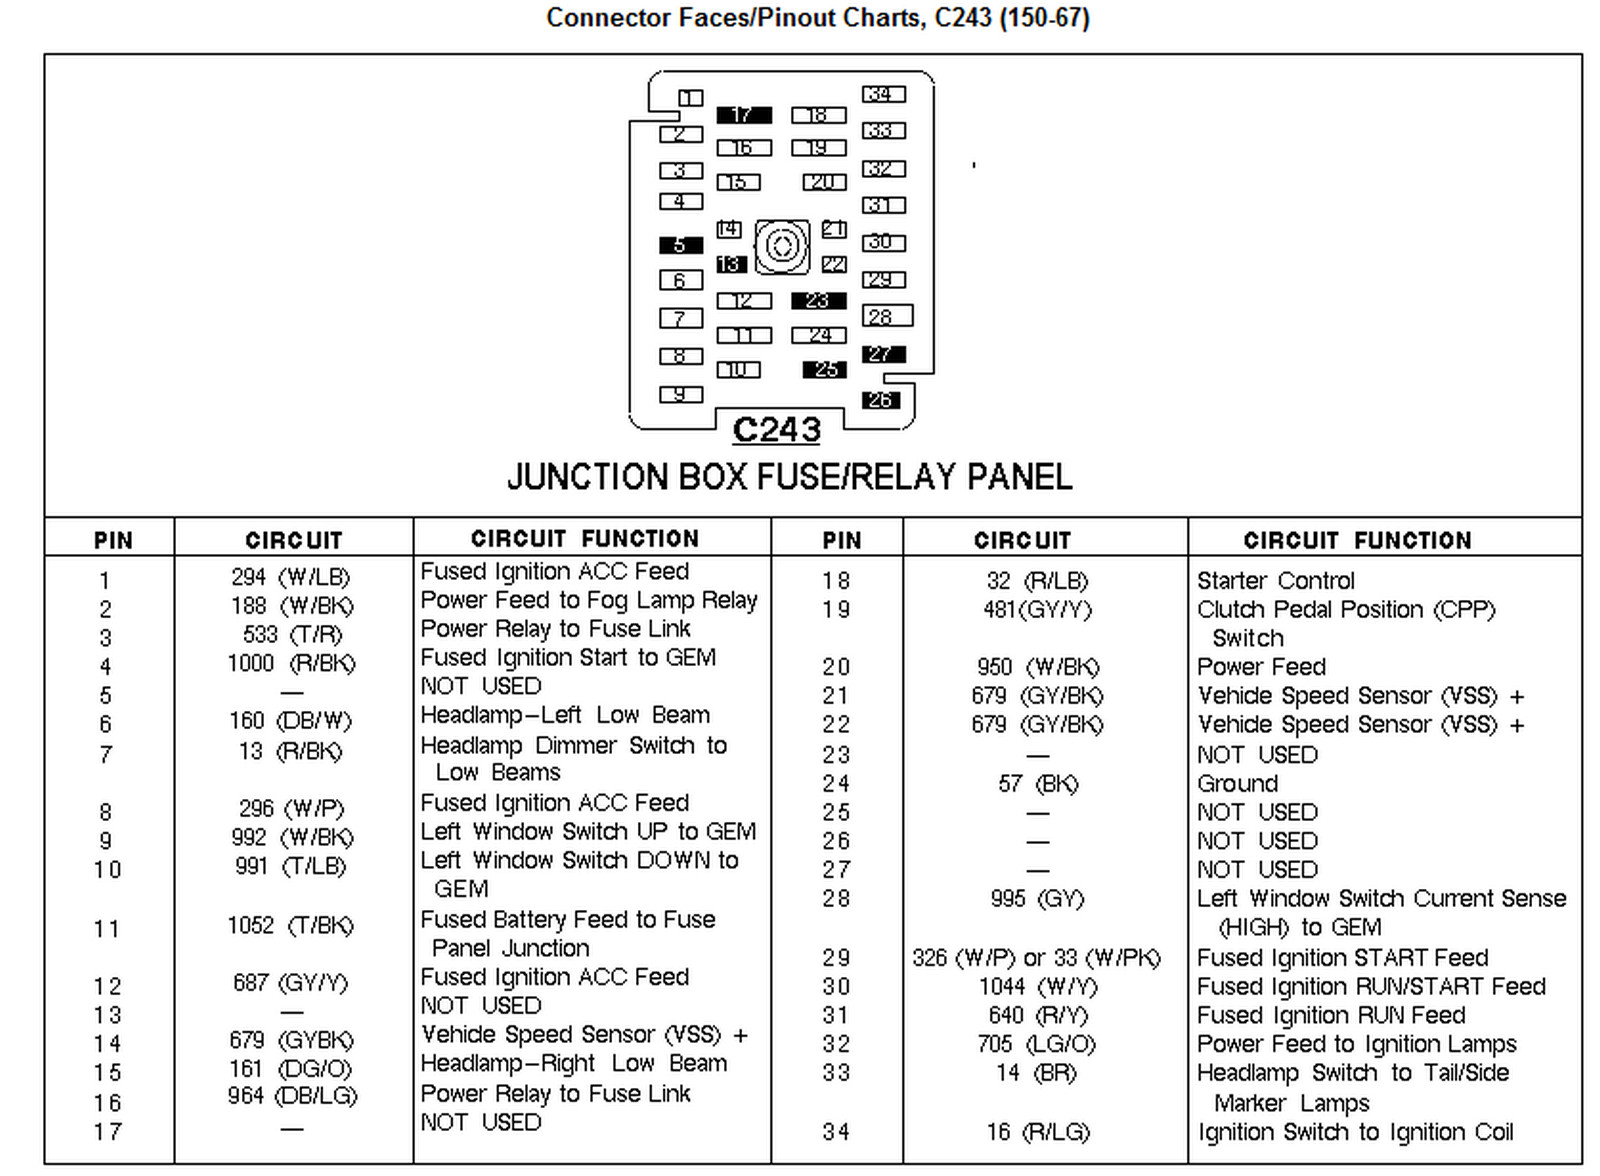 2002 F250 Fuse Diagram Under Dash Schema Wiring Diagrams 2000 Ford F350 Transmission Box Scematic Remote Start